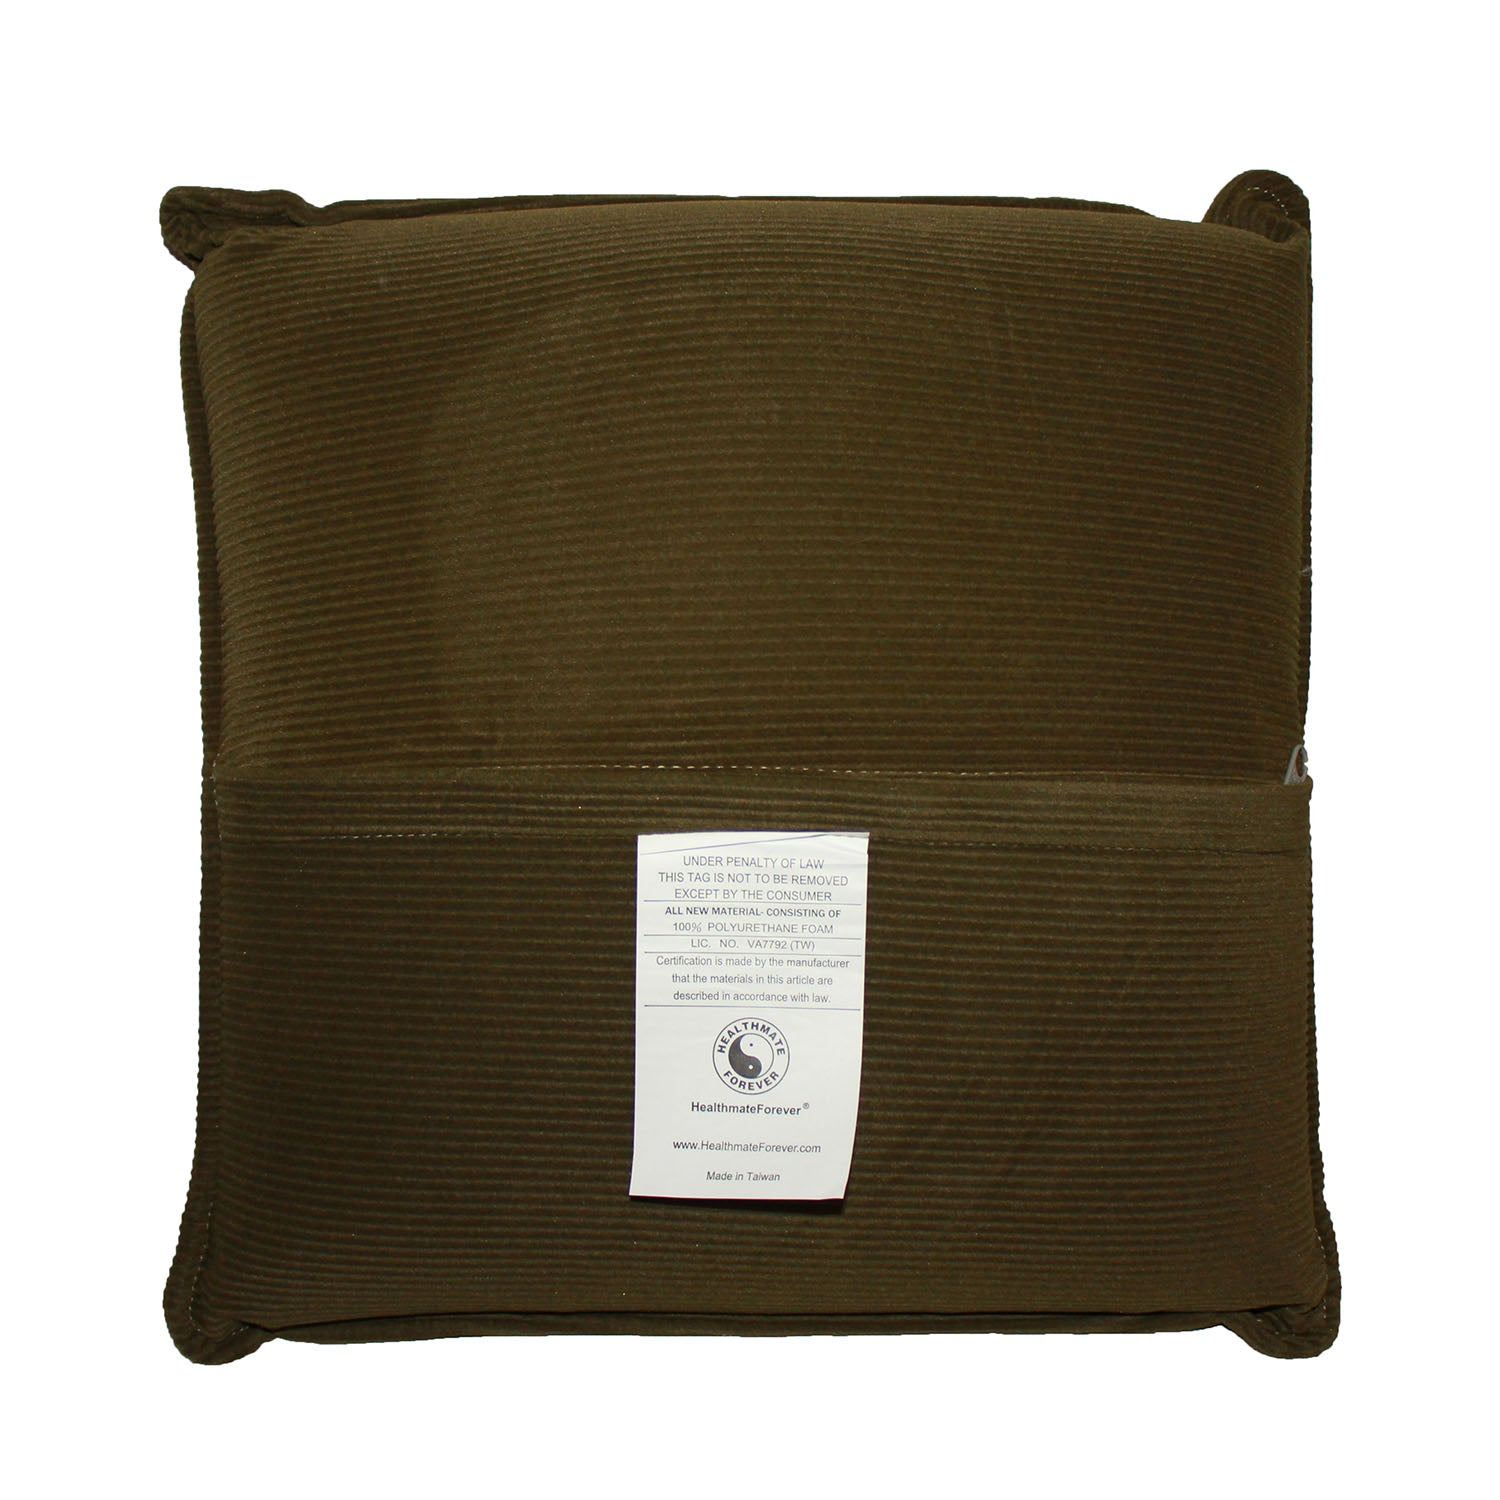 Pressure Activated Massage Pillow Olive Green - HealthmateForever.com